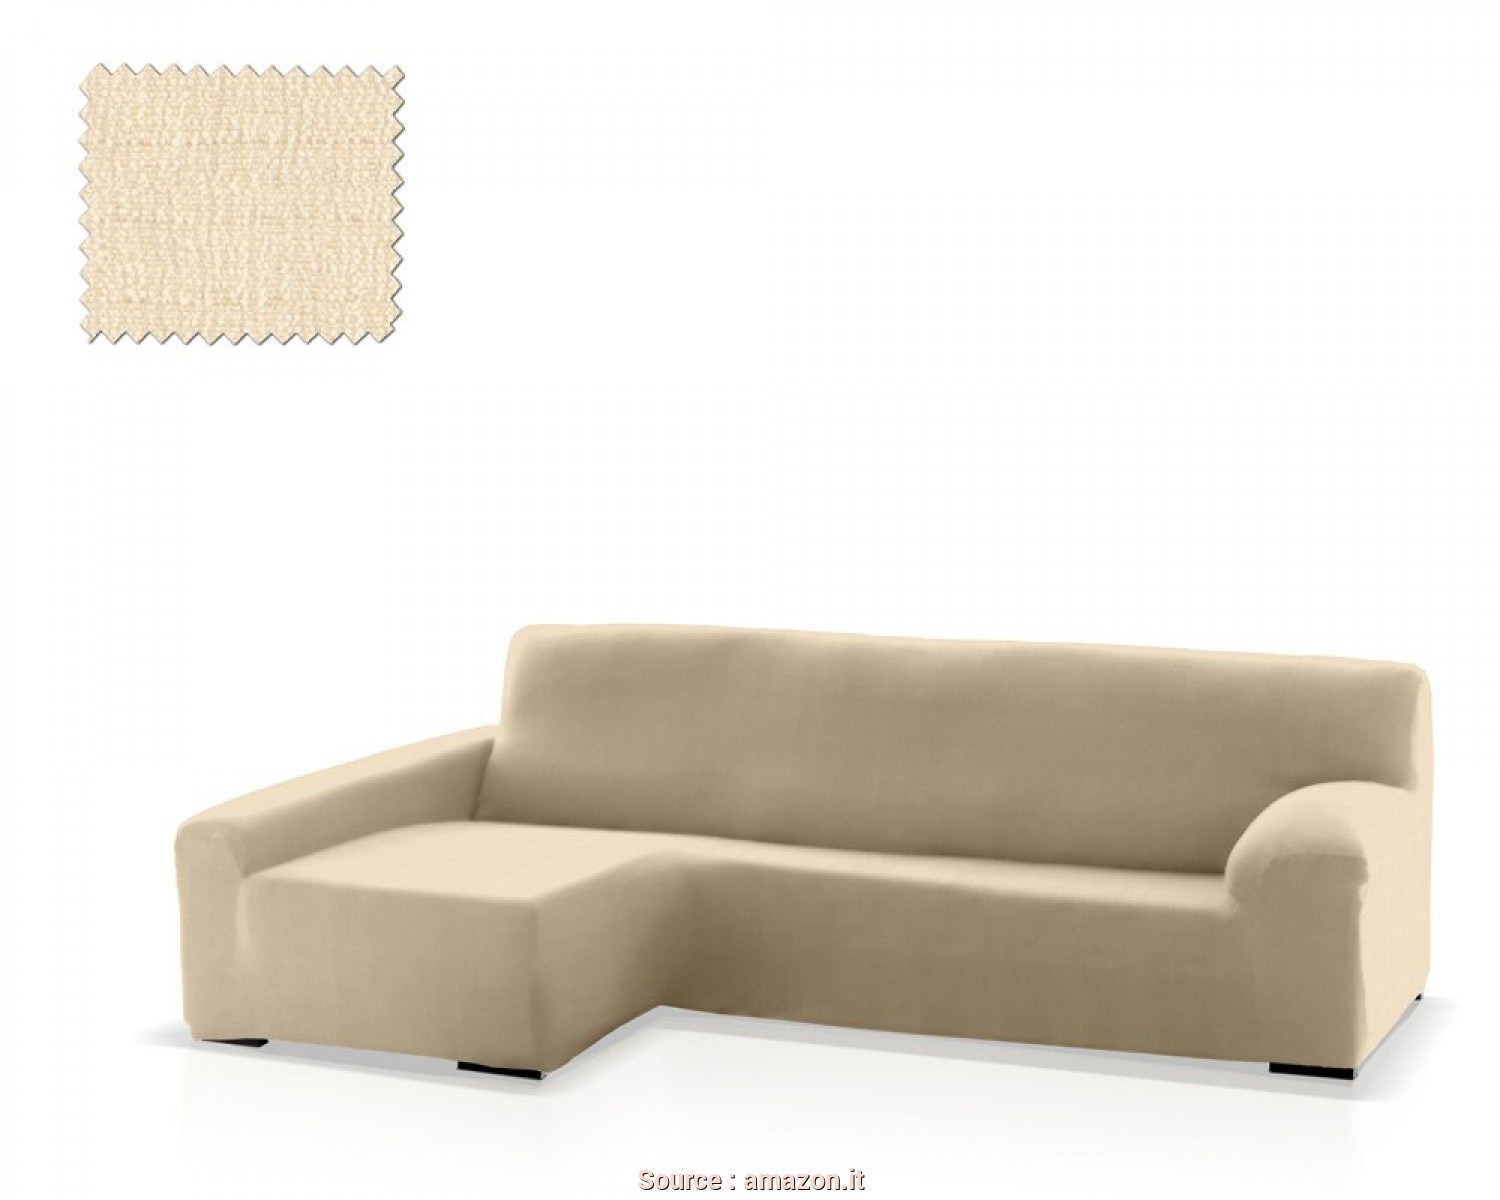 Completare 5 Come Rivestire Un Divano, Chaise Longue